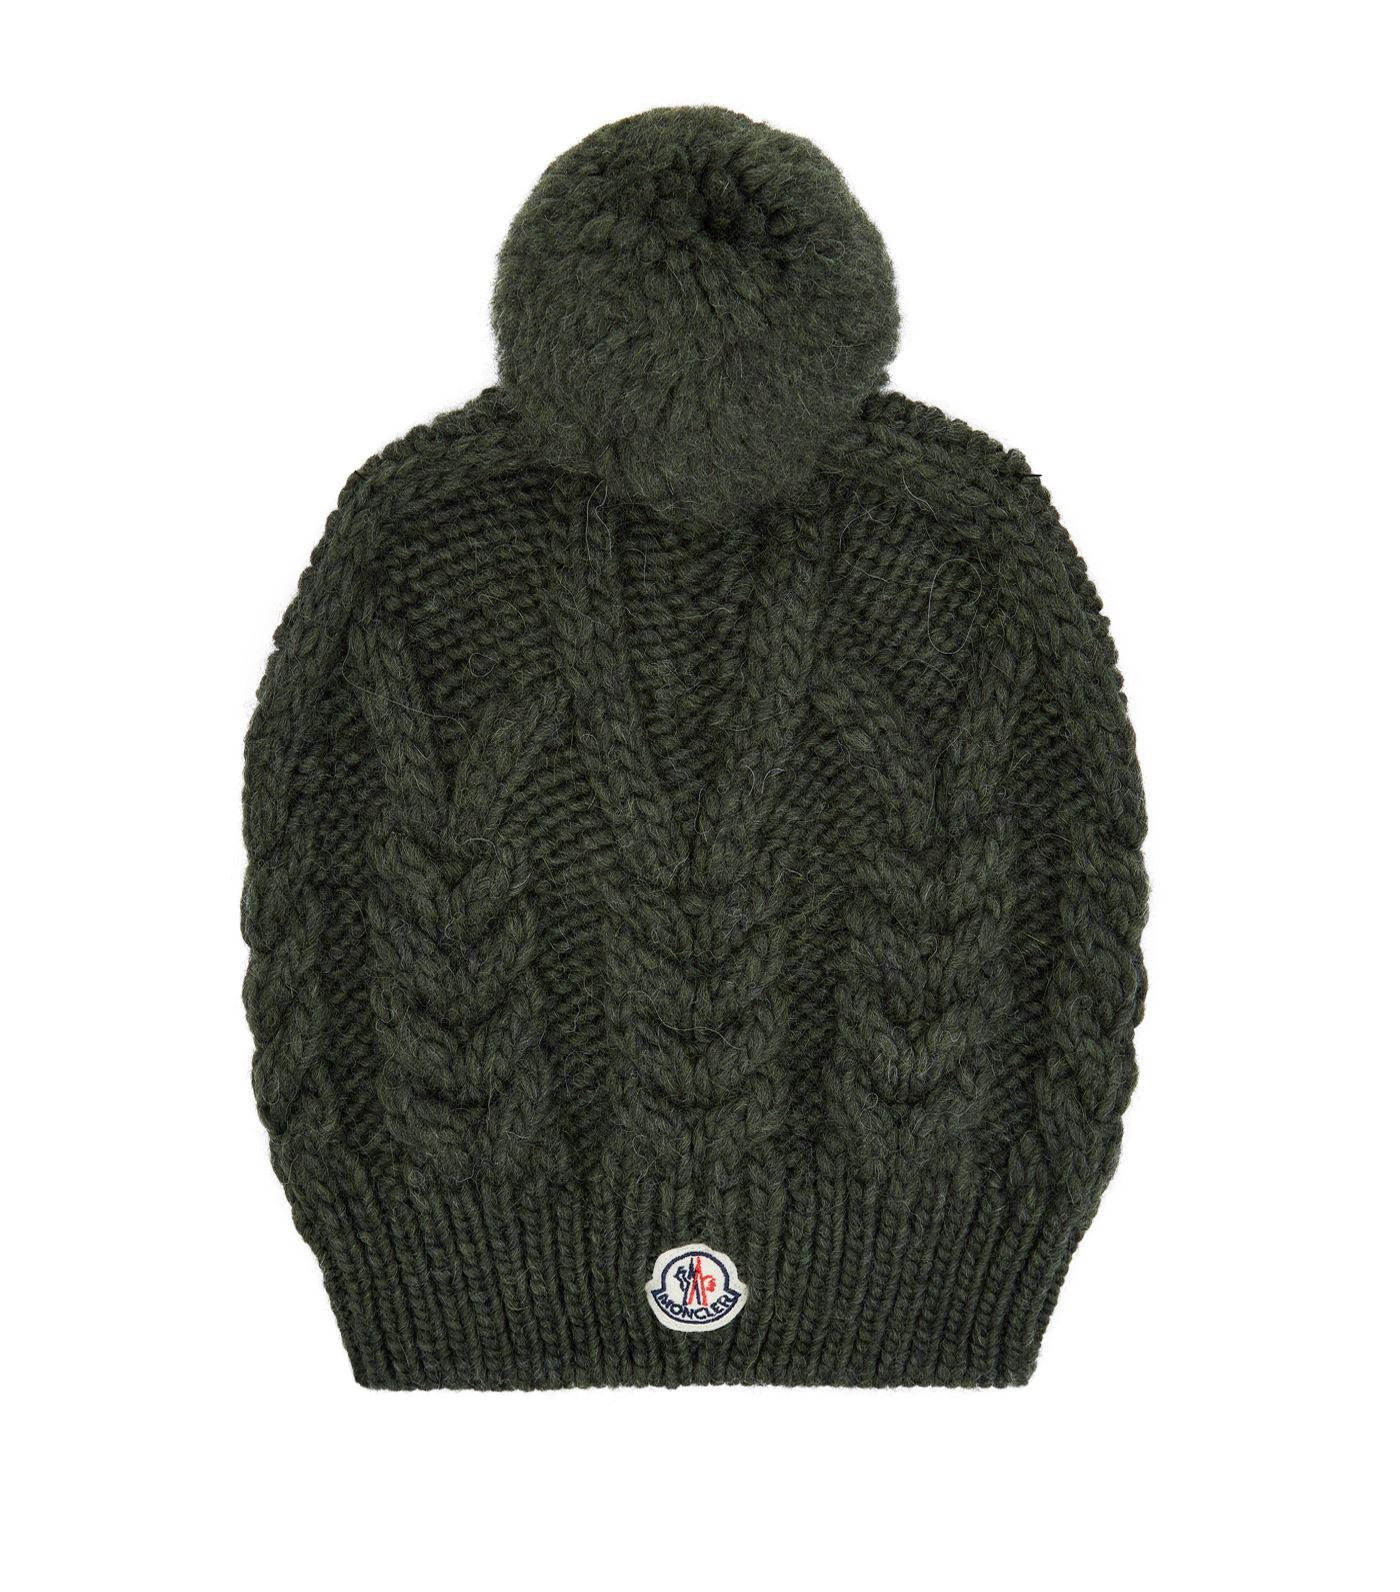 6146be22c8e40 Moncler Alpaca Bobble Hat in Green - Lyst